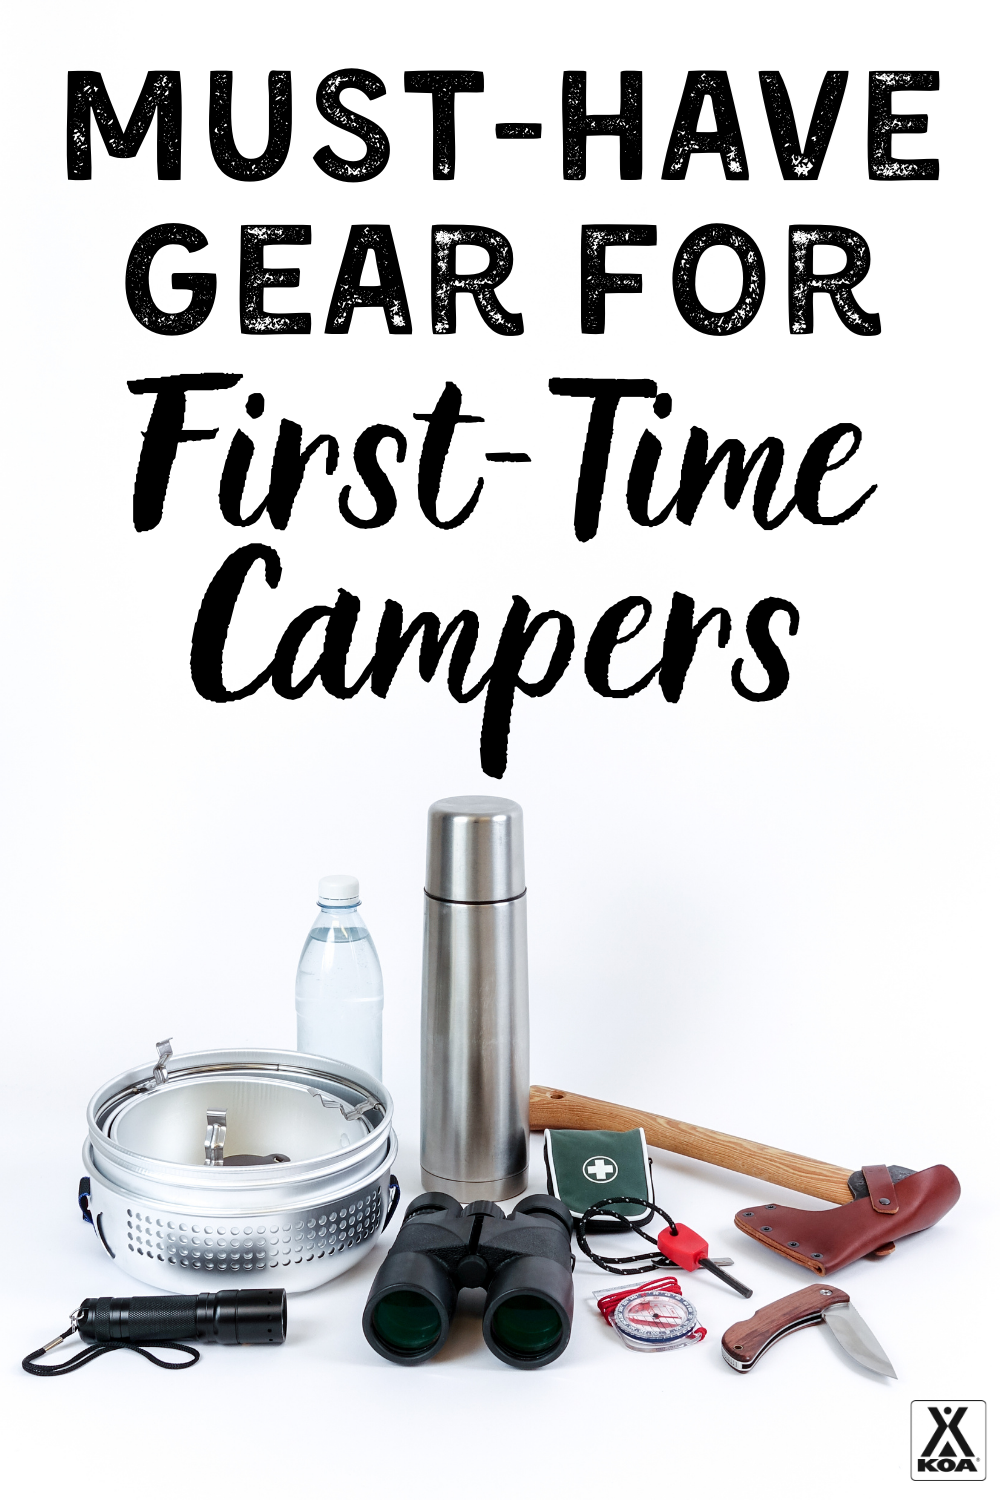 One of those most daunting parts of your first camping trip is what to bring. If you're looking to embark on your first camping trip this year, here is the must-have gear you'll need to get started.